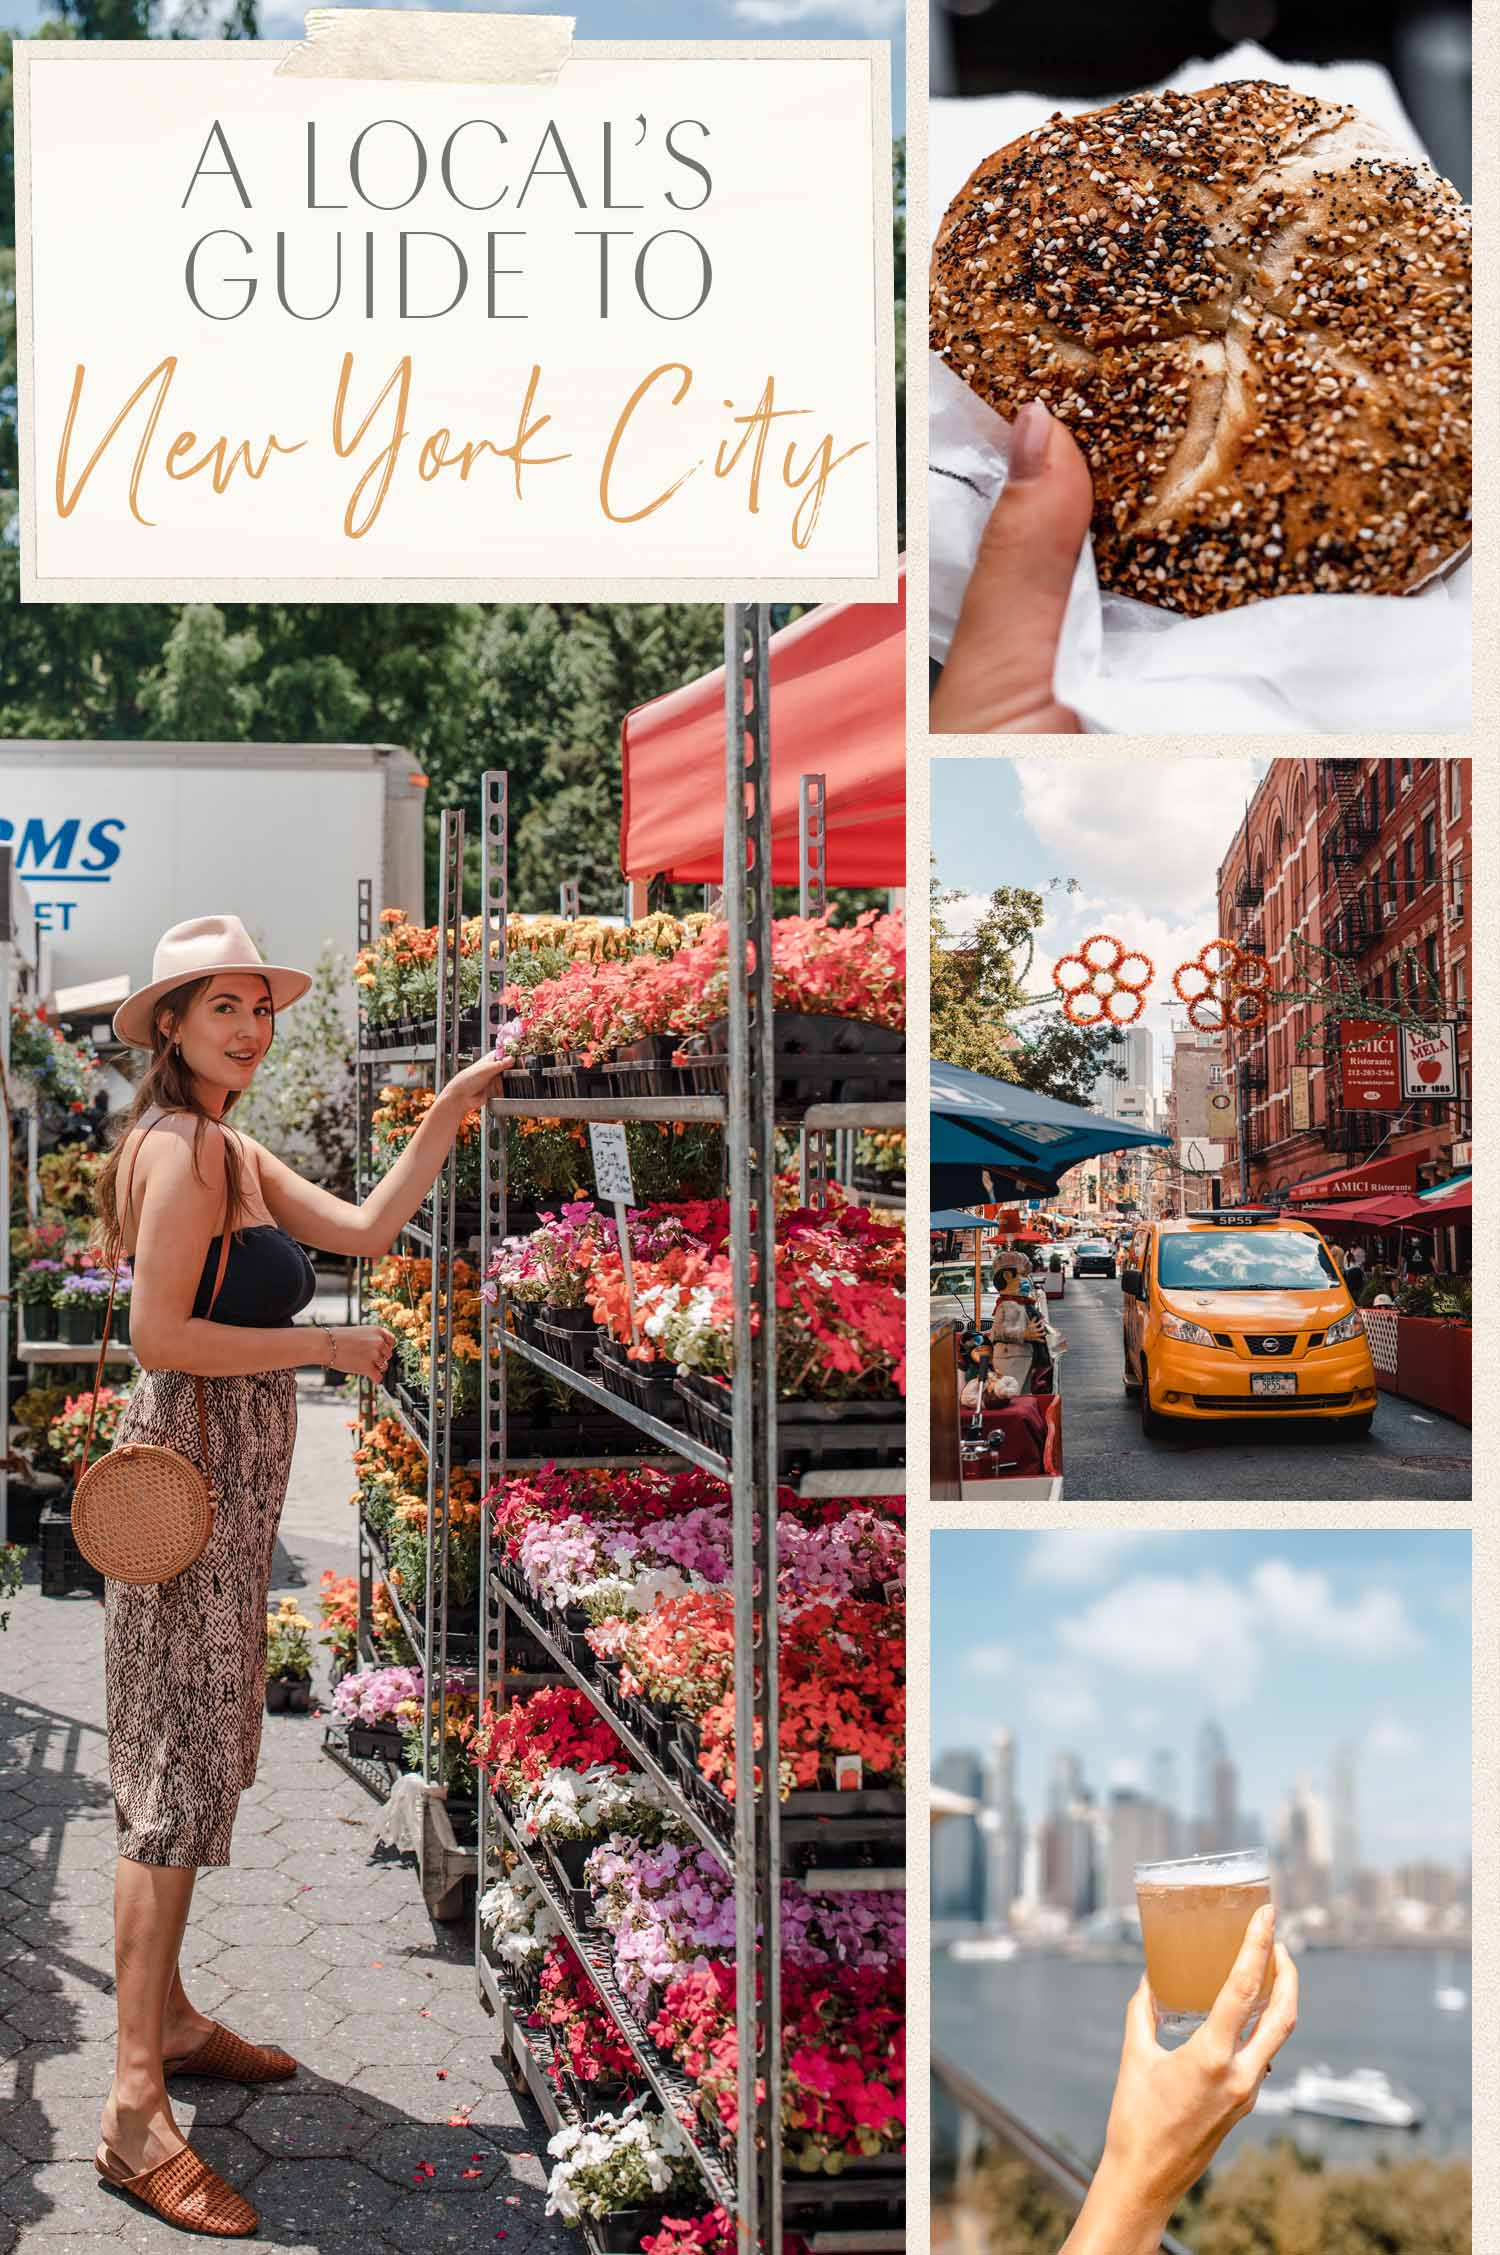 Locals Guide to New York City